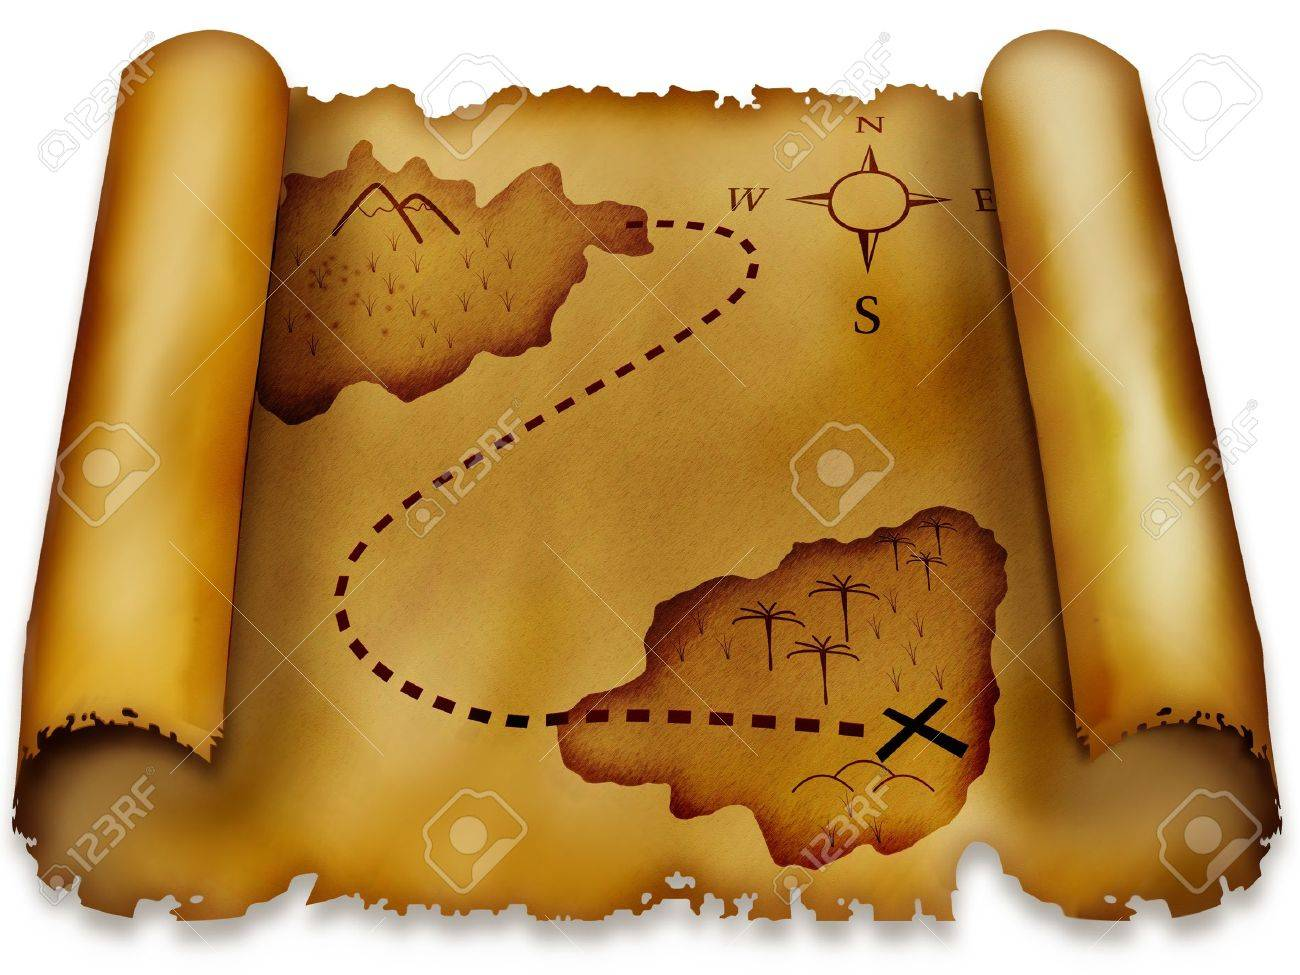 2 902 treasure map background stock illustrations cliparts and